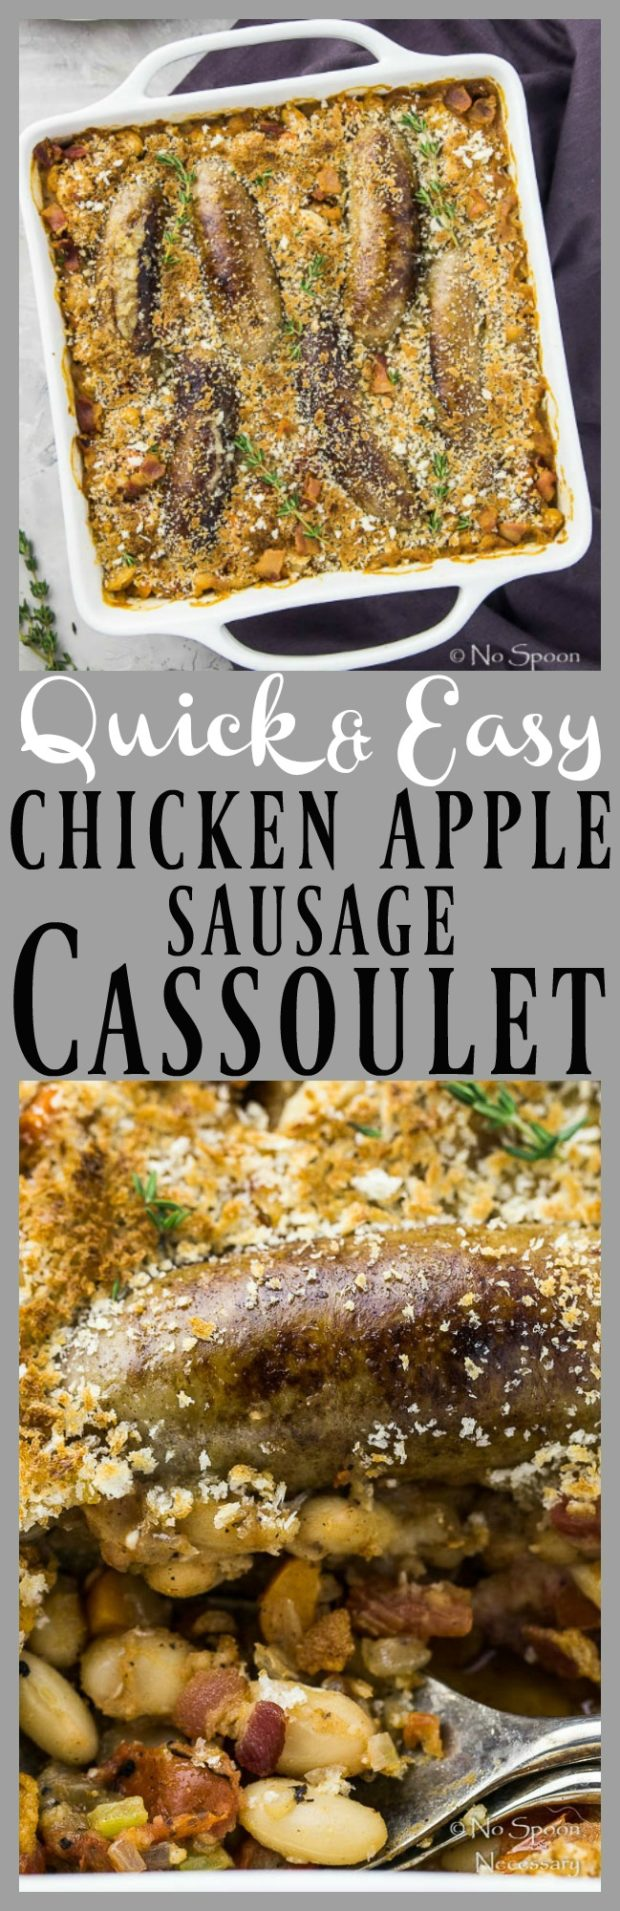 Chicken Apple Sausage Quick Cassoulet